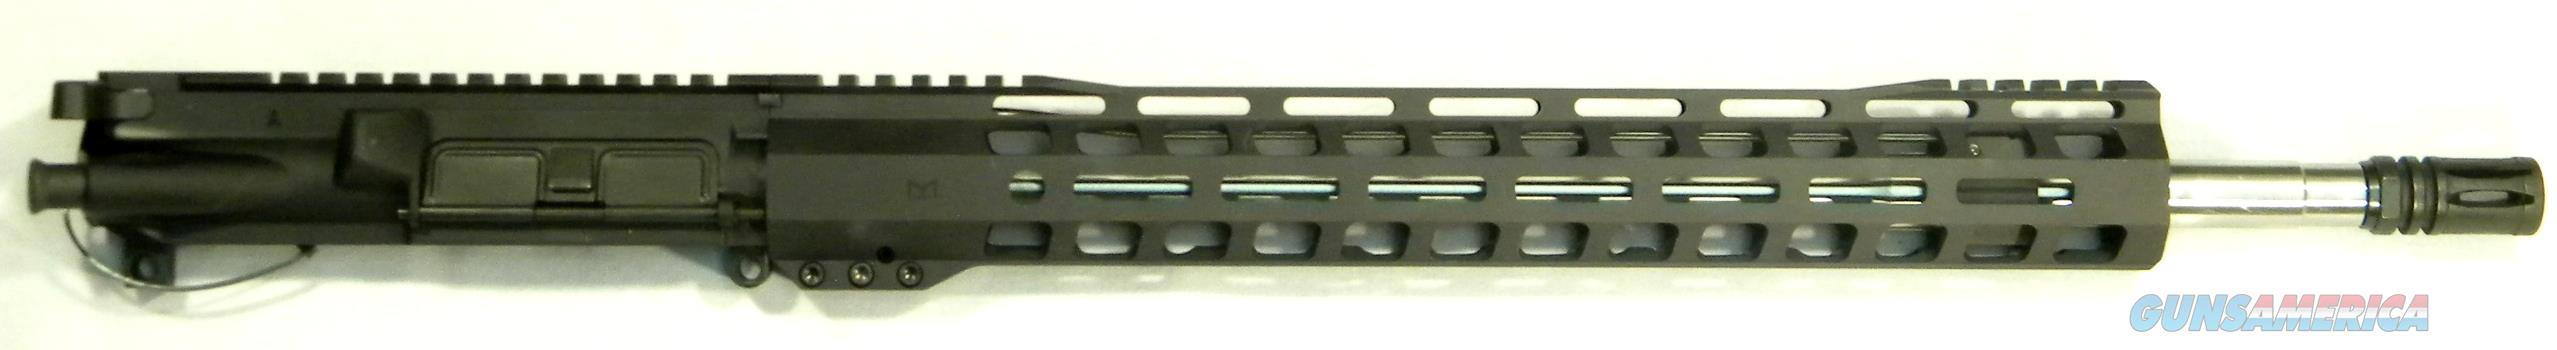 """.224 Valkyrie Complete Upper For AR-15, Stainless 18"""" Barrel w/ Free-Float Hand Guard  Non-Guns > Gun Parts > M16-AR15"""